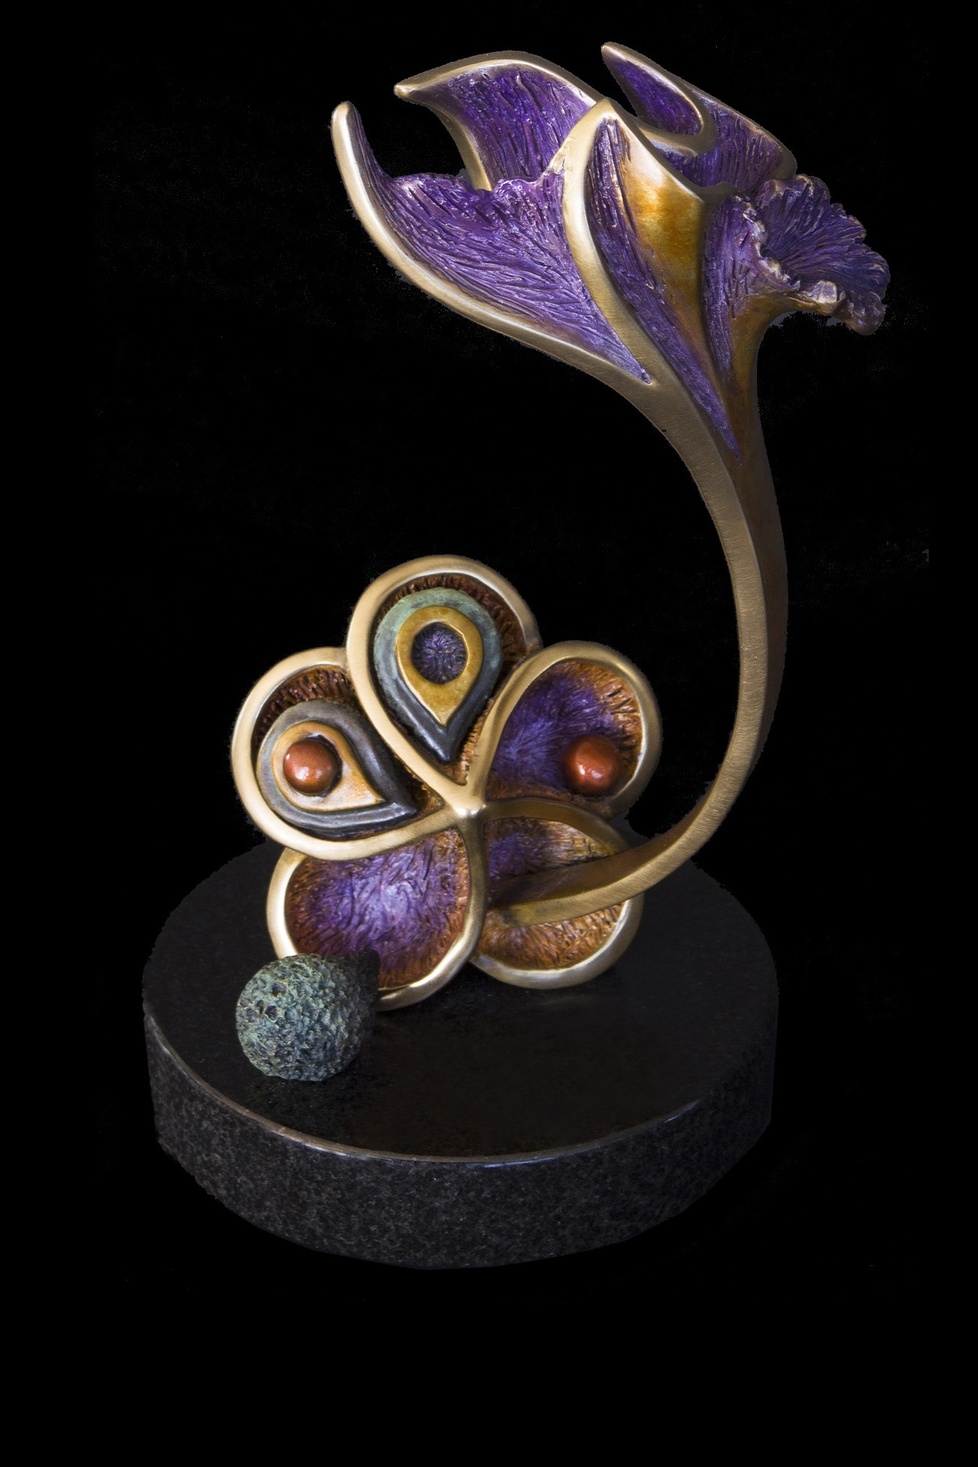 "Bursting Forth with Joy, Bronze, 10.5"" H x 6.5"" W x 5.5"" D, Edition of 85:  There are times in our lives when we must consciously choose to crack open the protective shell we shield our seed of joy in and allow that seed to break free, take root, and then burst forth and bloom in all its glory."